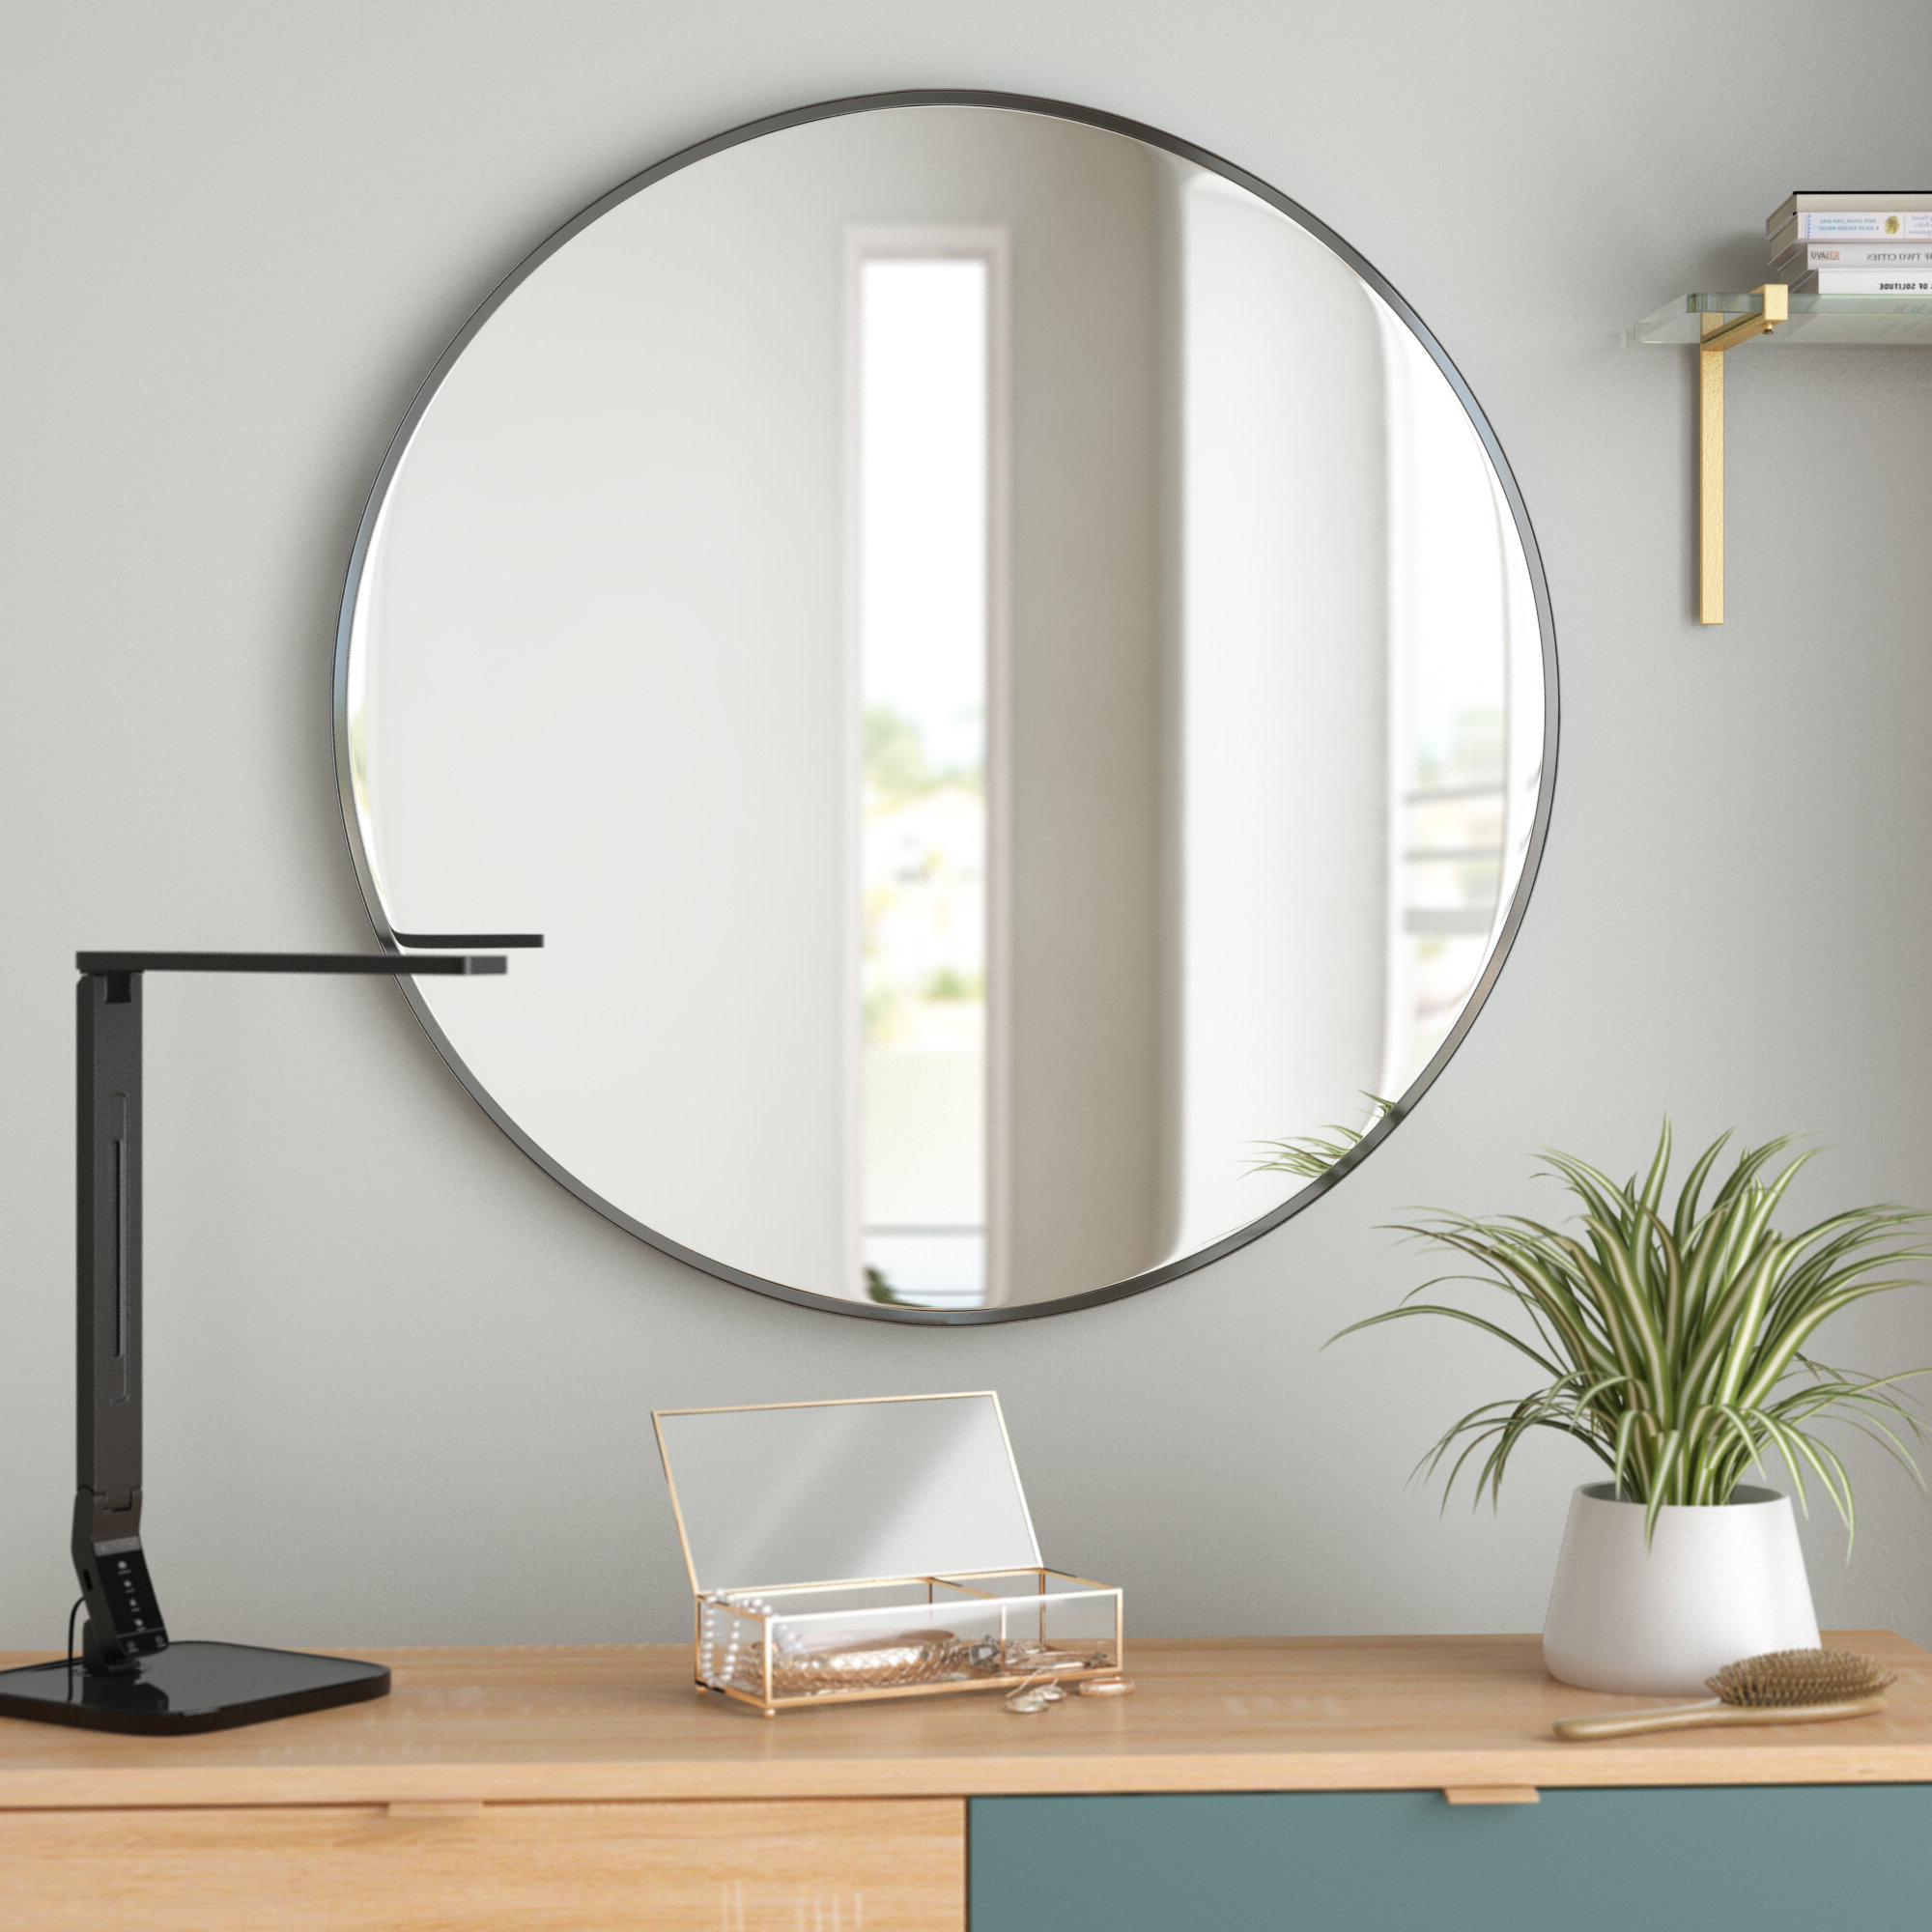 2 Piece Priscilla Square Traditional Beveled Distressed Accent Mirror Sets With Regard To Well Known Birch Lane Heritage Wells Industrial Accent Mirror In (View 5 of 20)